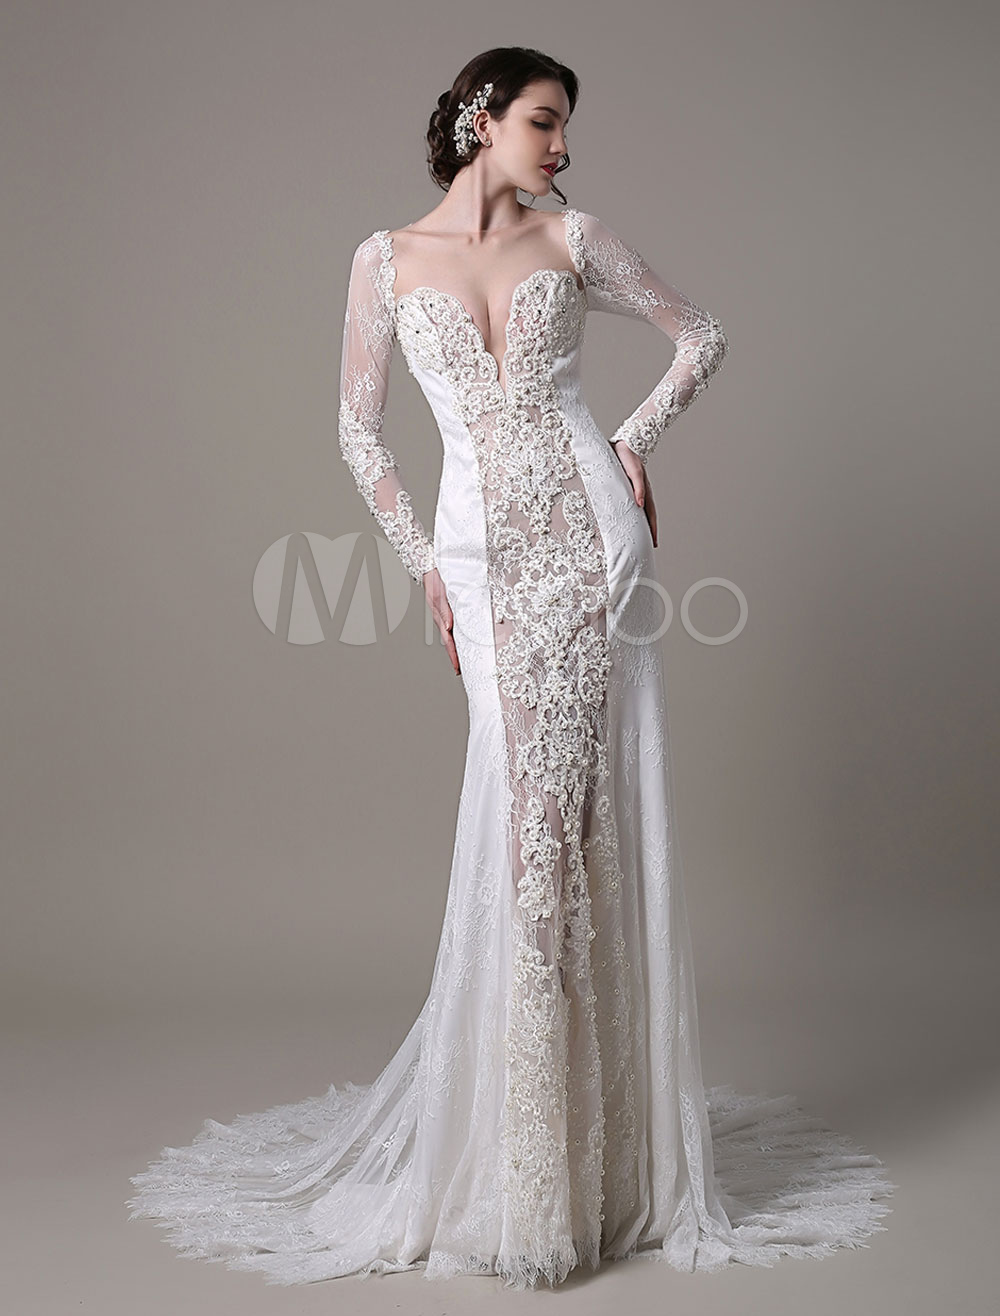 Sexy Lace Vintage Wedding Dress With Long Sleeves Deep Illusion V-Neck Luxury Beaded And Pearls All Bodice  Milanoo